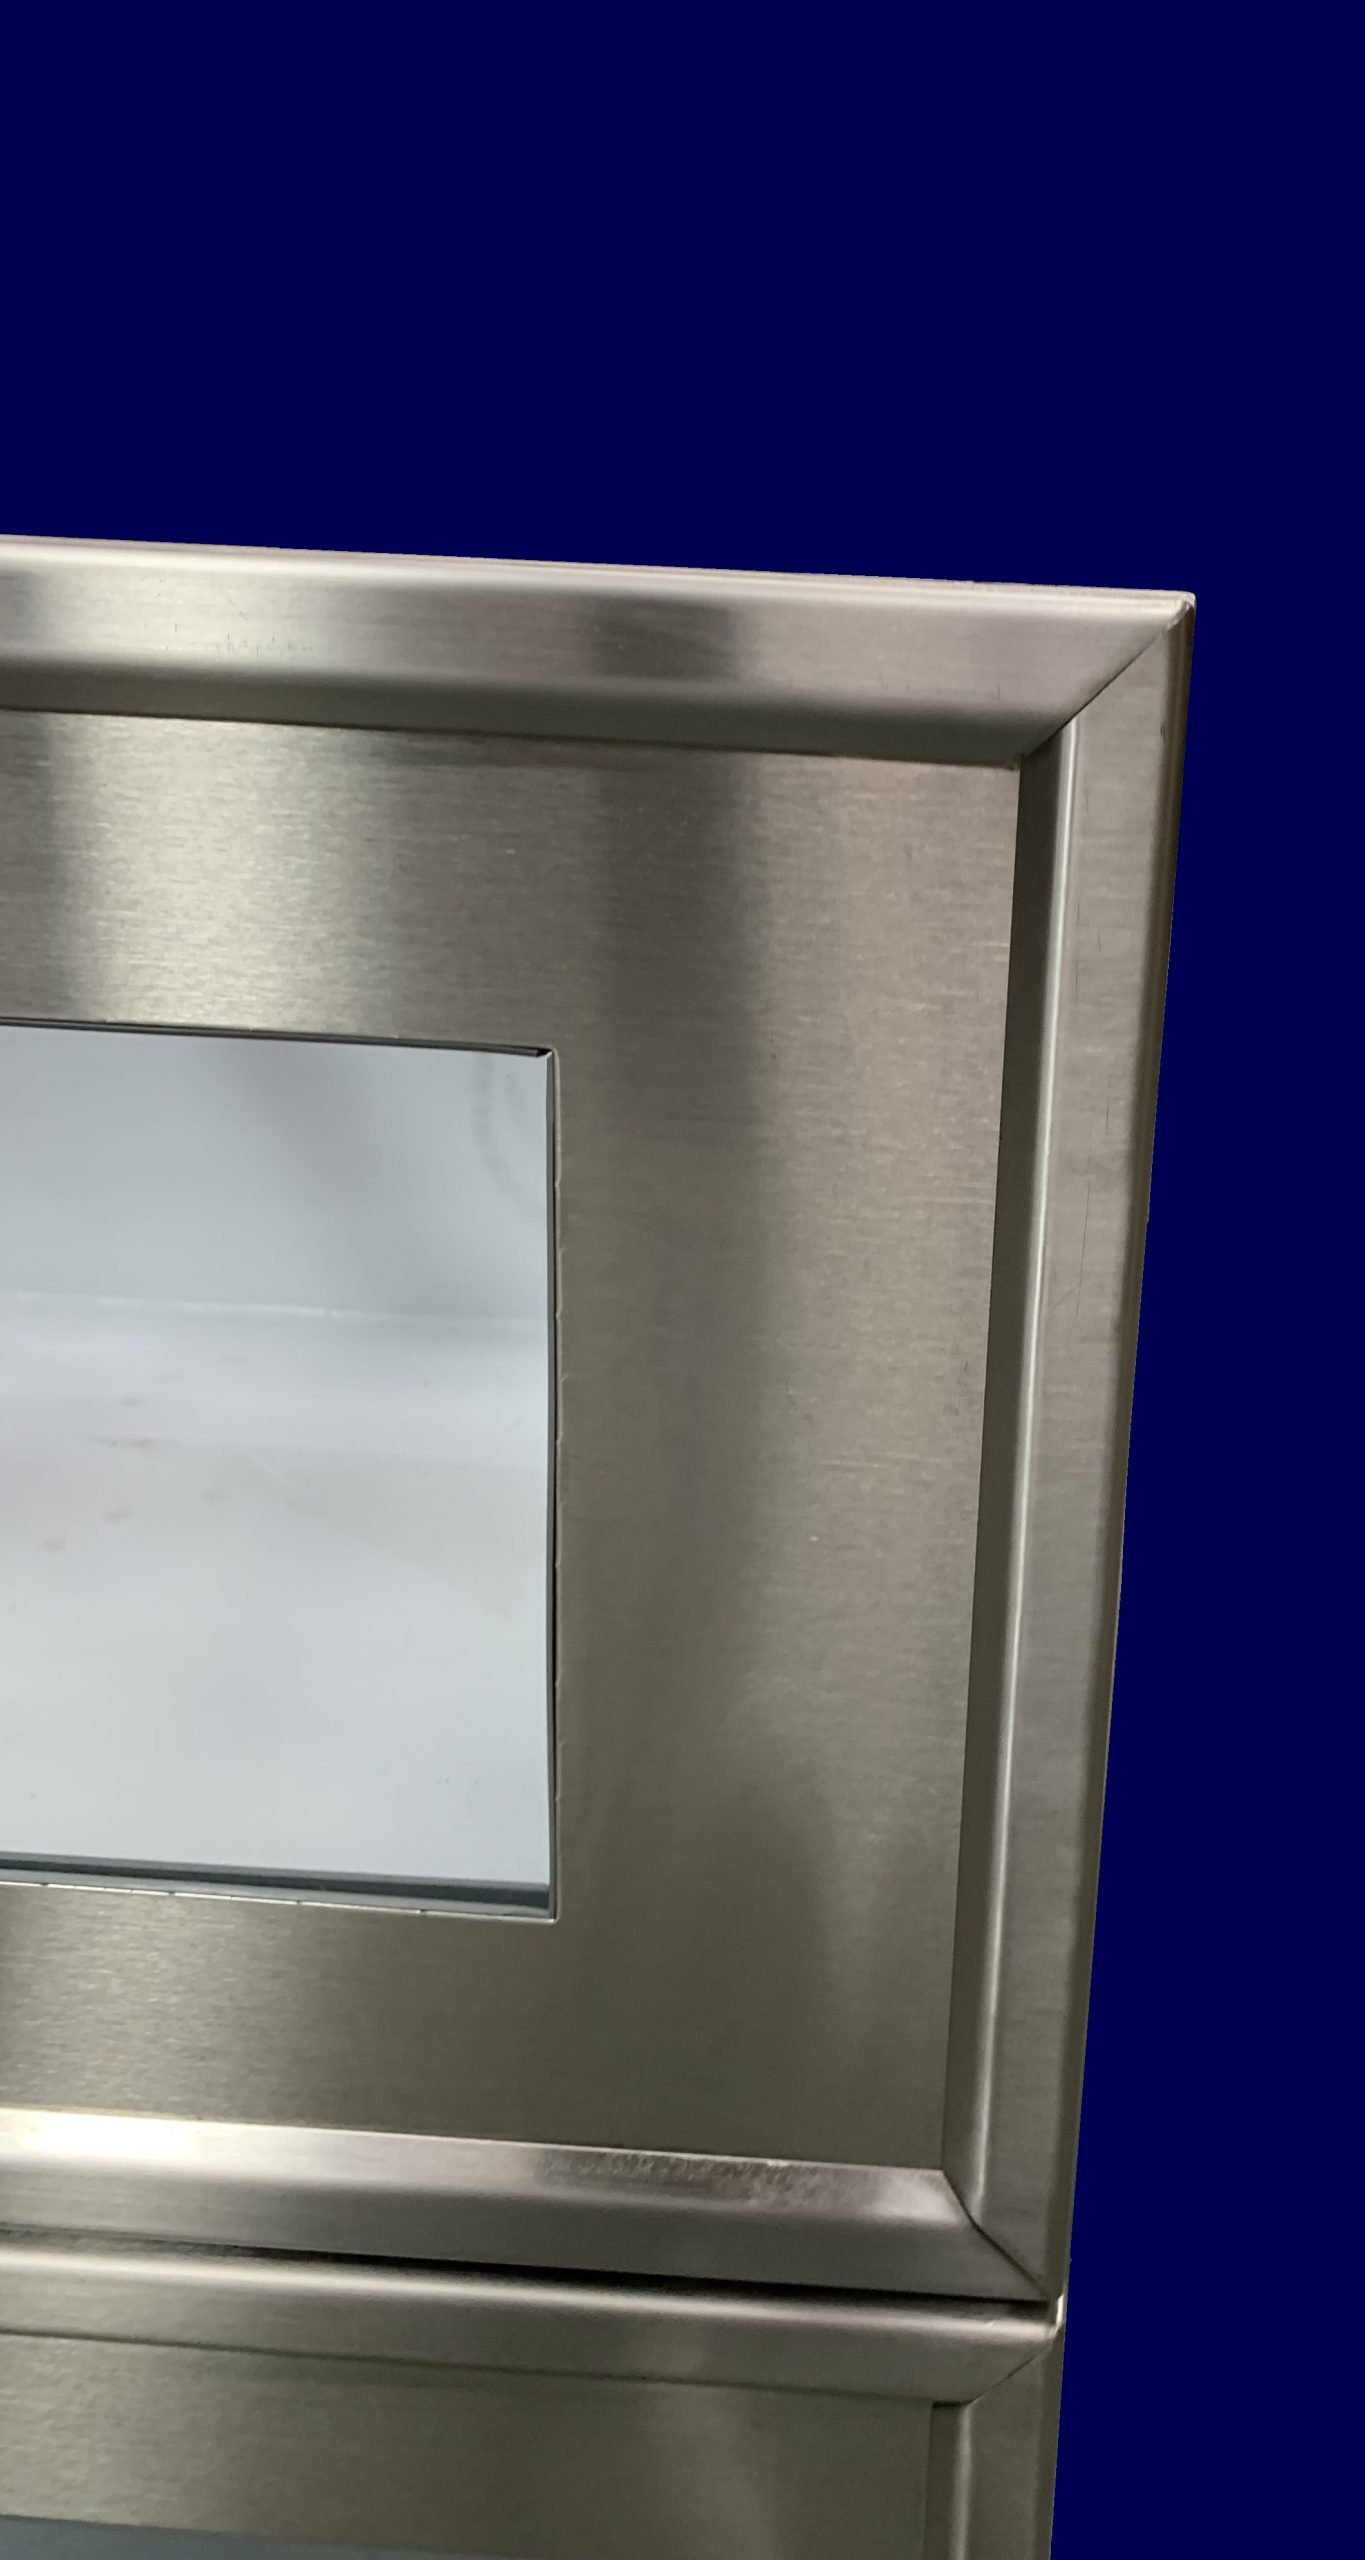 Detail of stainless steel framed glass drawer front